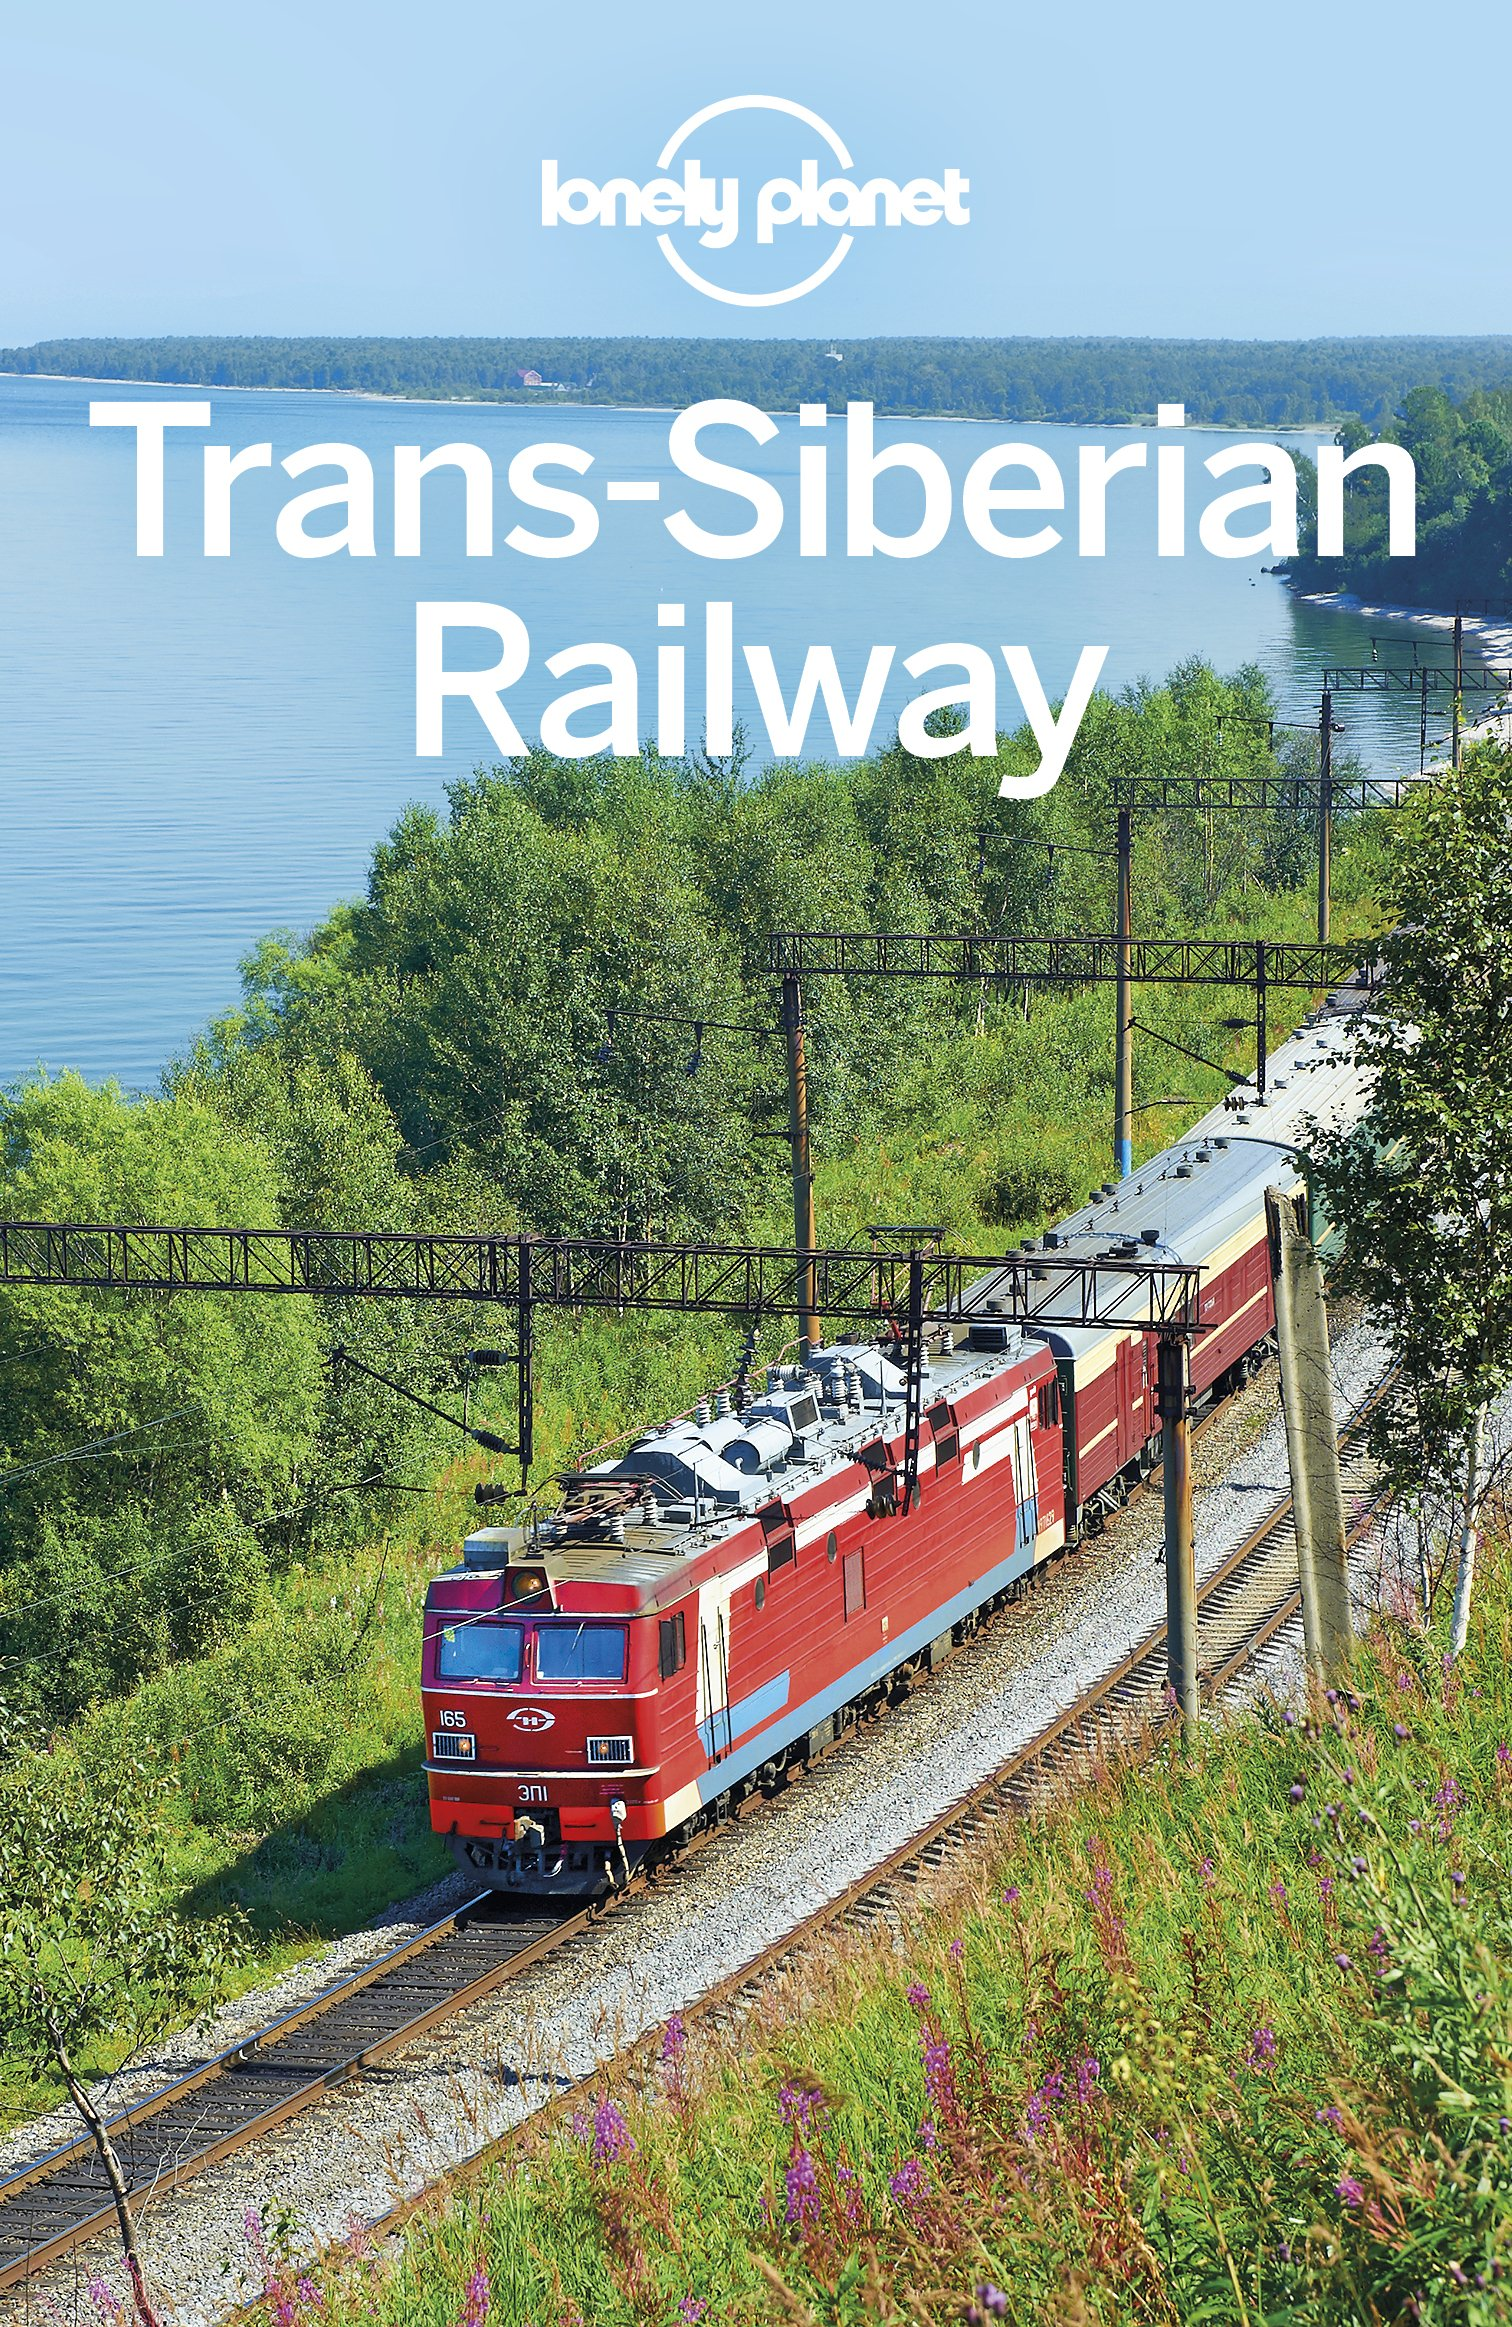 Lonely Planet Trans-Siberian Railway (Travel Guide) (English Edition)